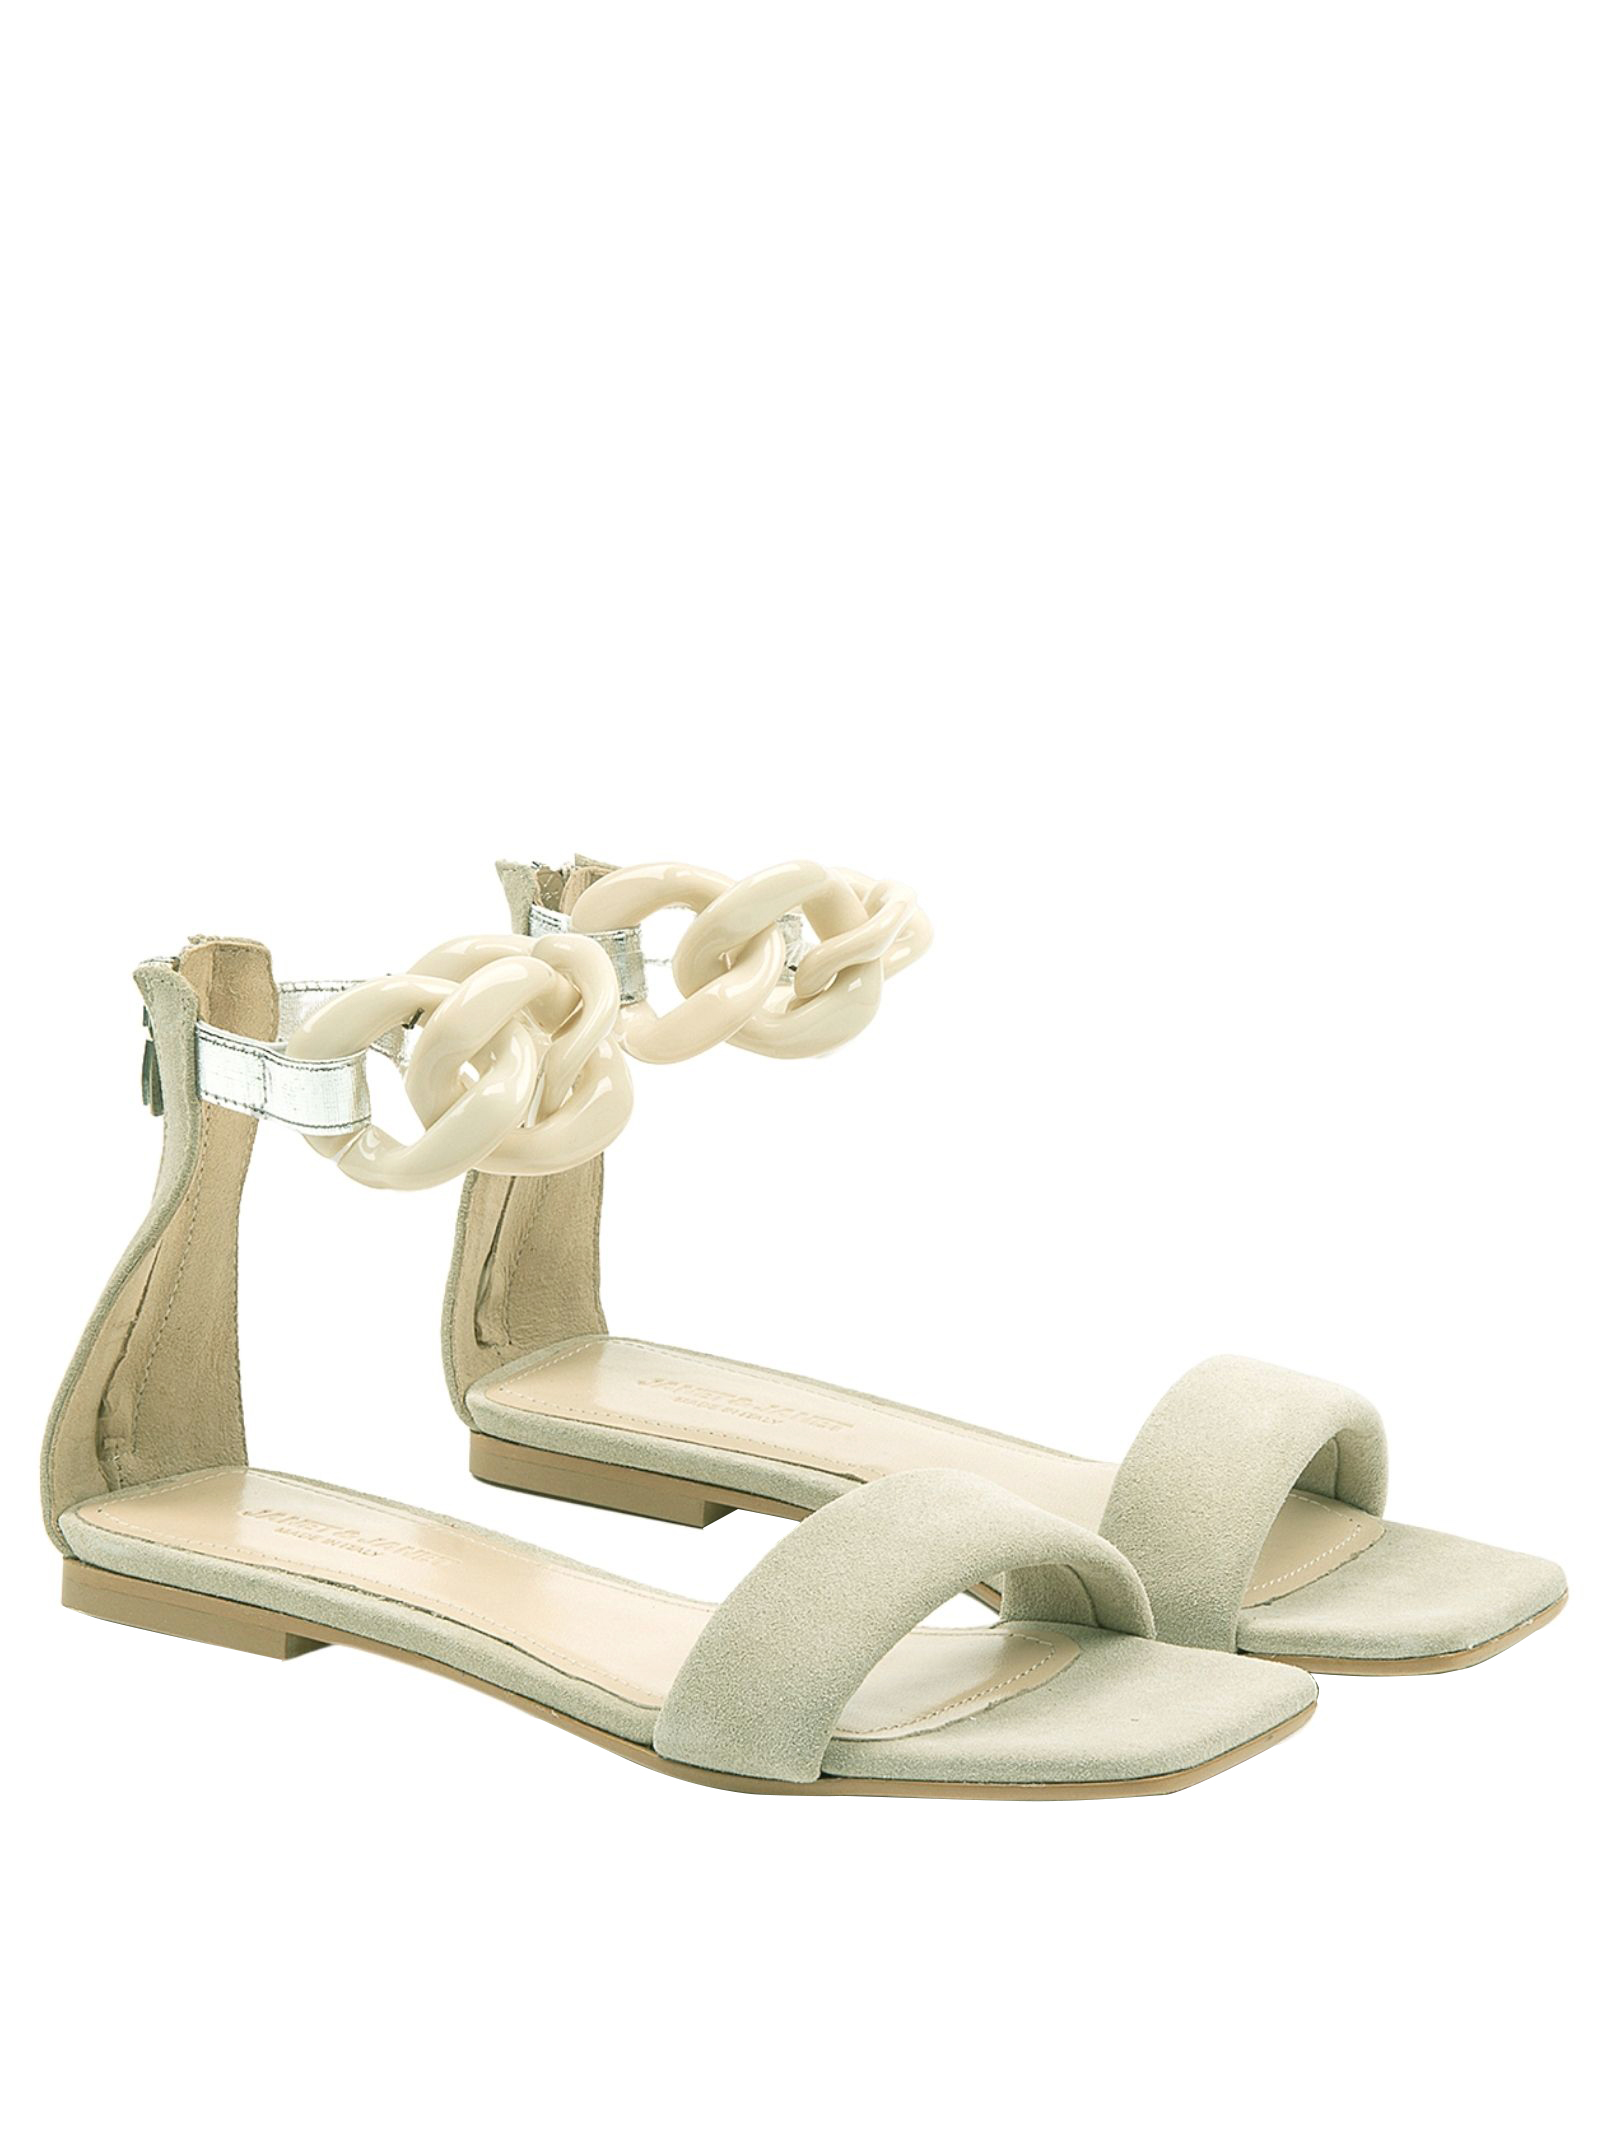 Women's Shoes Low Sandals in Ivory Suede Low with Chain Anklet Janet & Janet | Flat sandals | 01103015